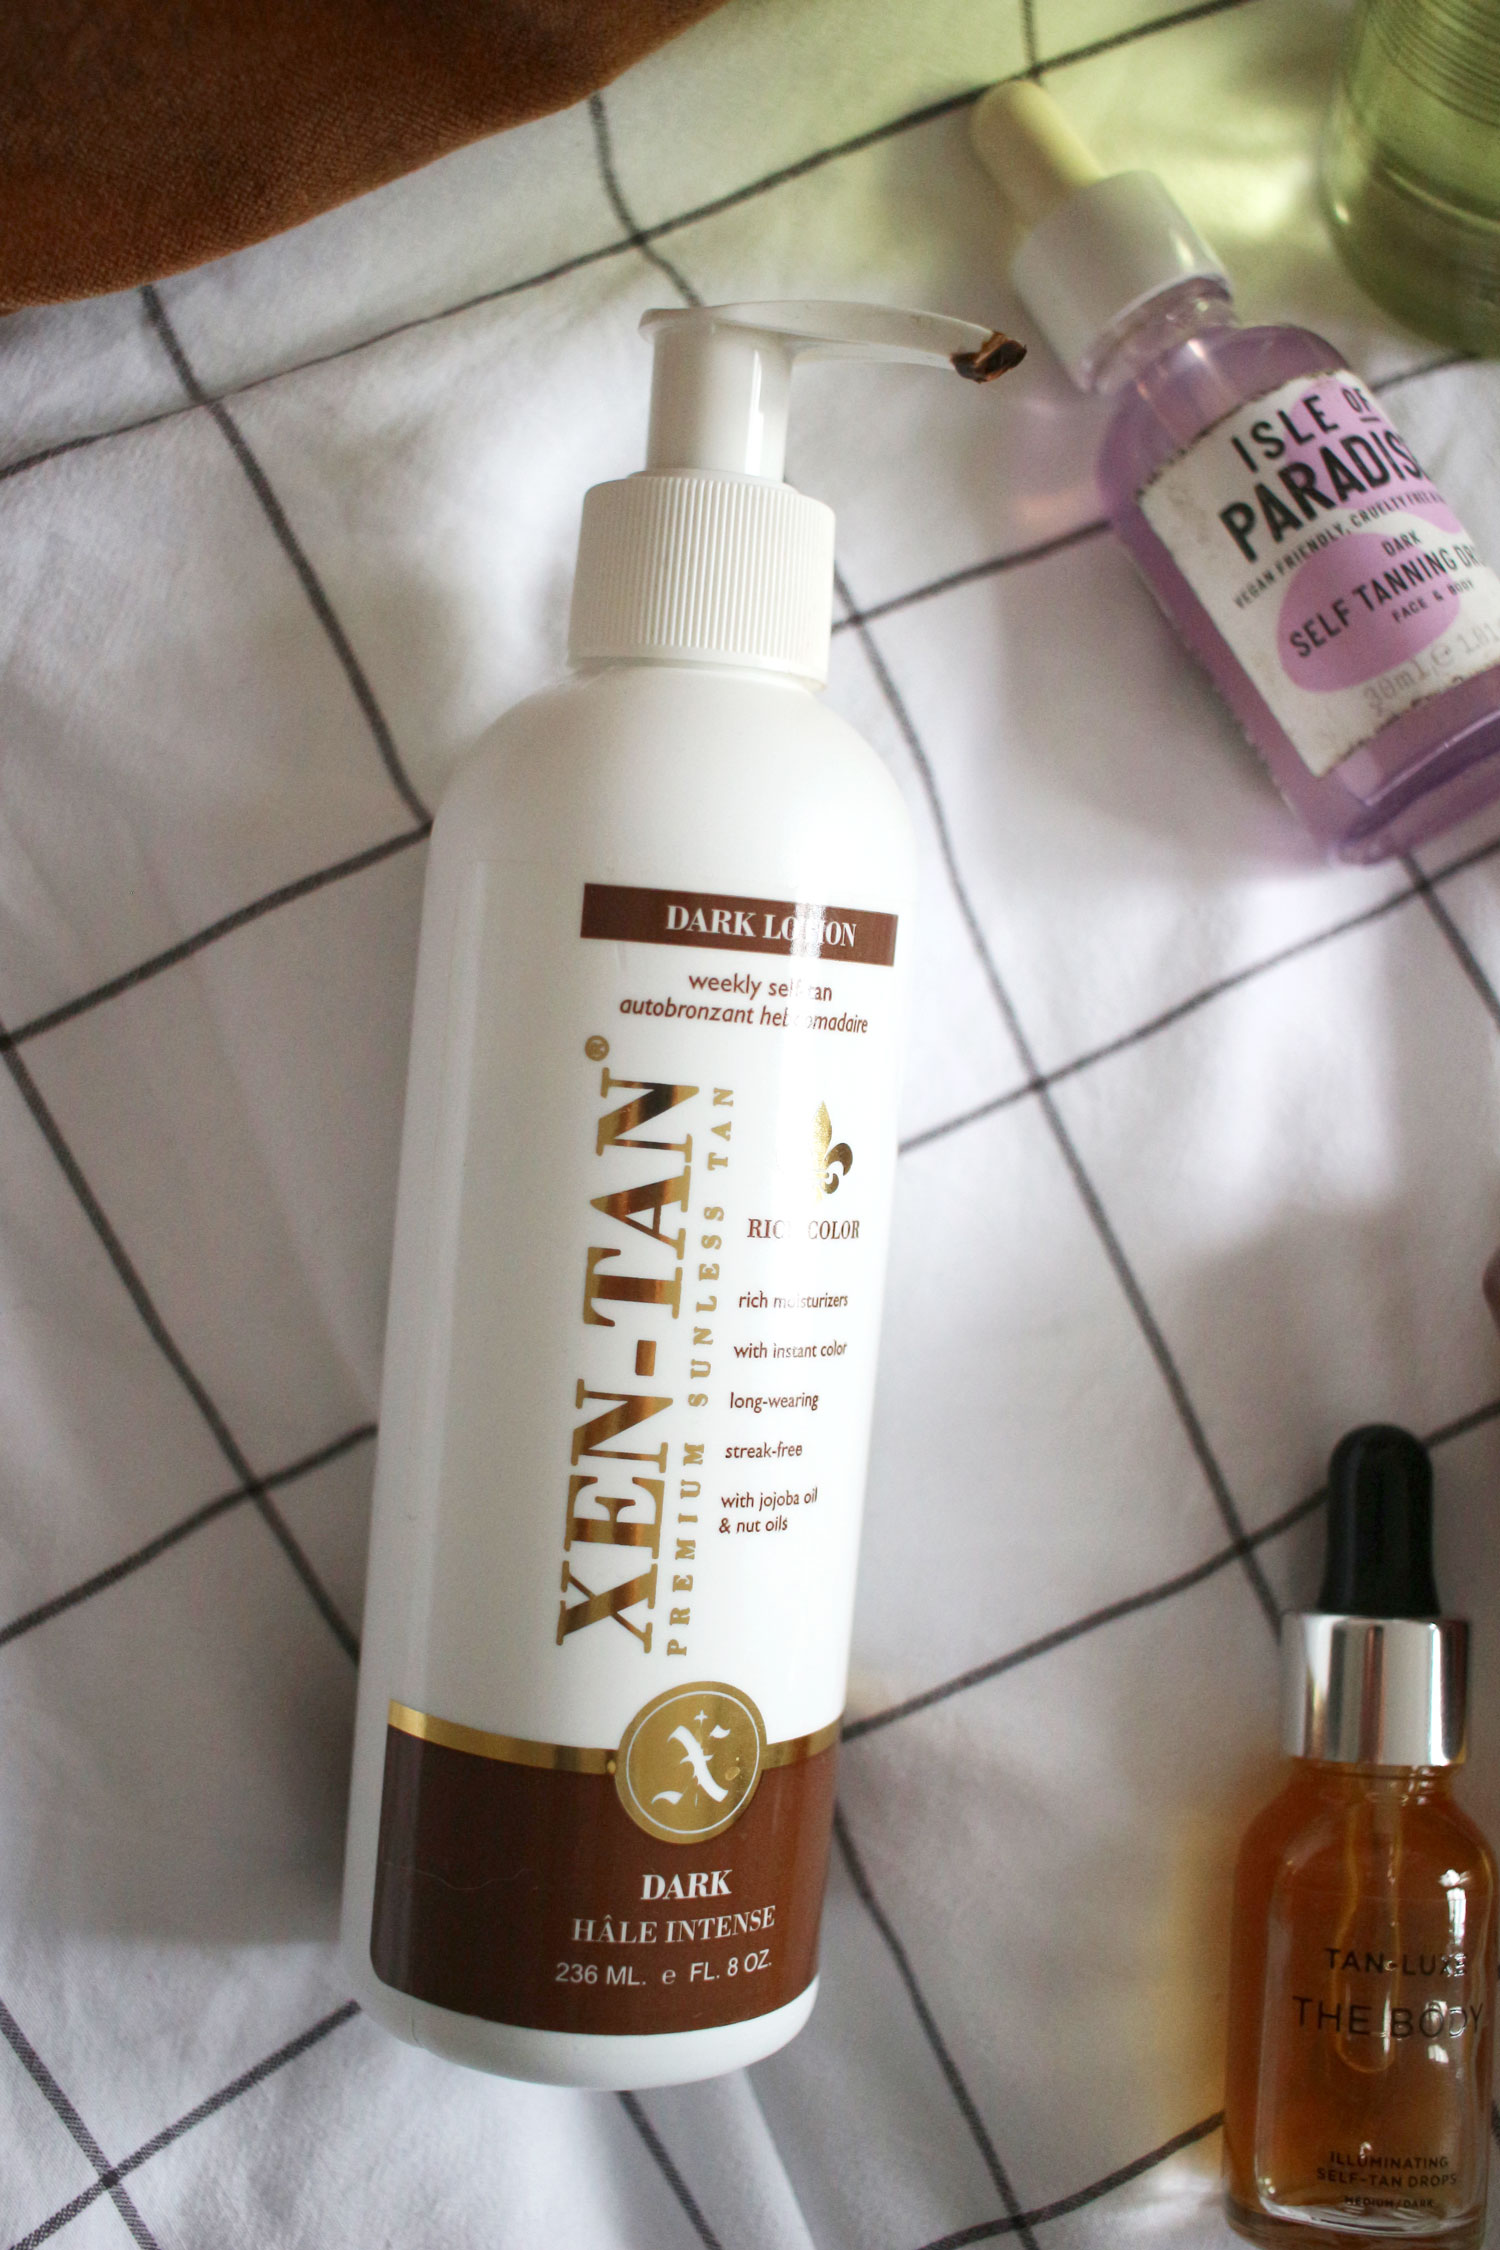 best-false-tan-over-20-tan-luxe-oil-st-tropez-vita-liberata-1